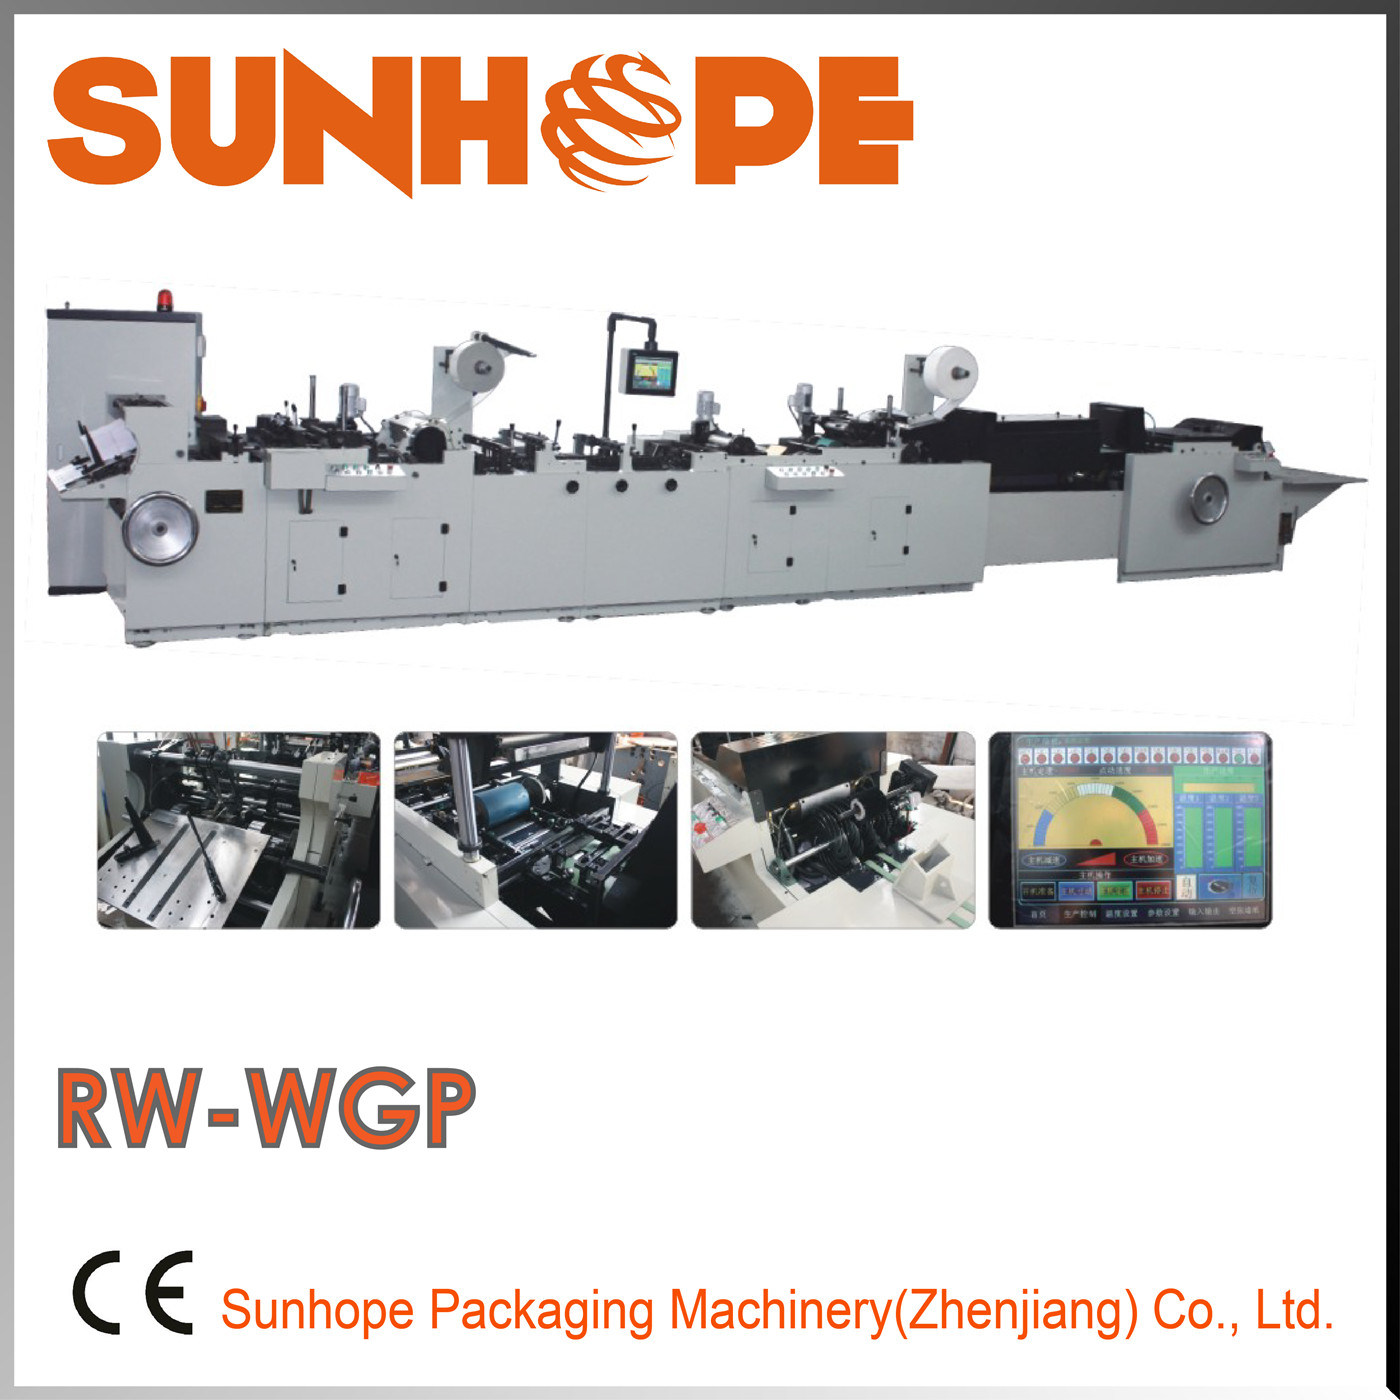 RW-Wgp Model Automatic Western Style Envelope Making Machine